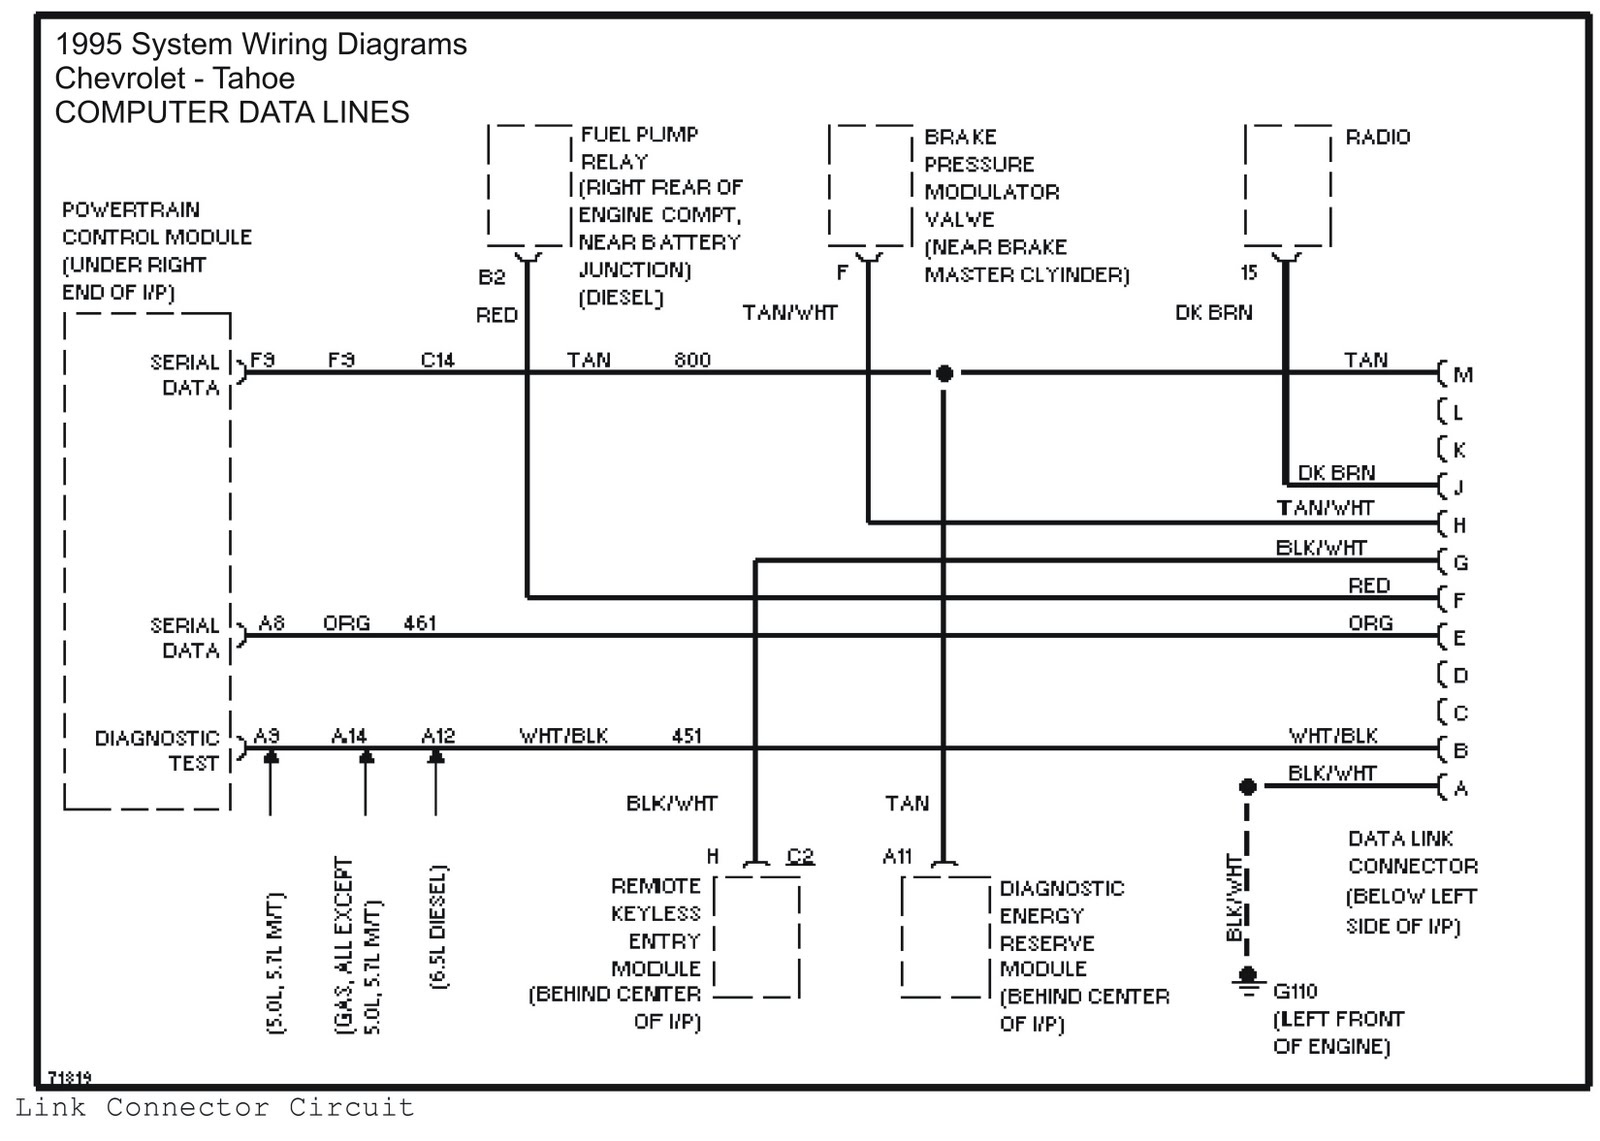 1995 System    Wiring       Diagrams       Chevrolet       Tahoe    Computer Data LinesData Link Connector Circuit